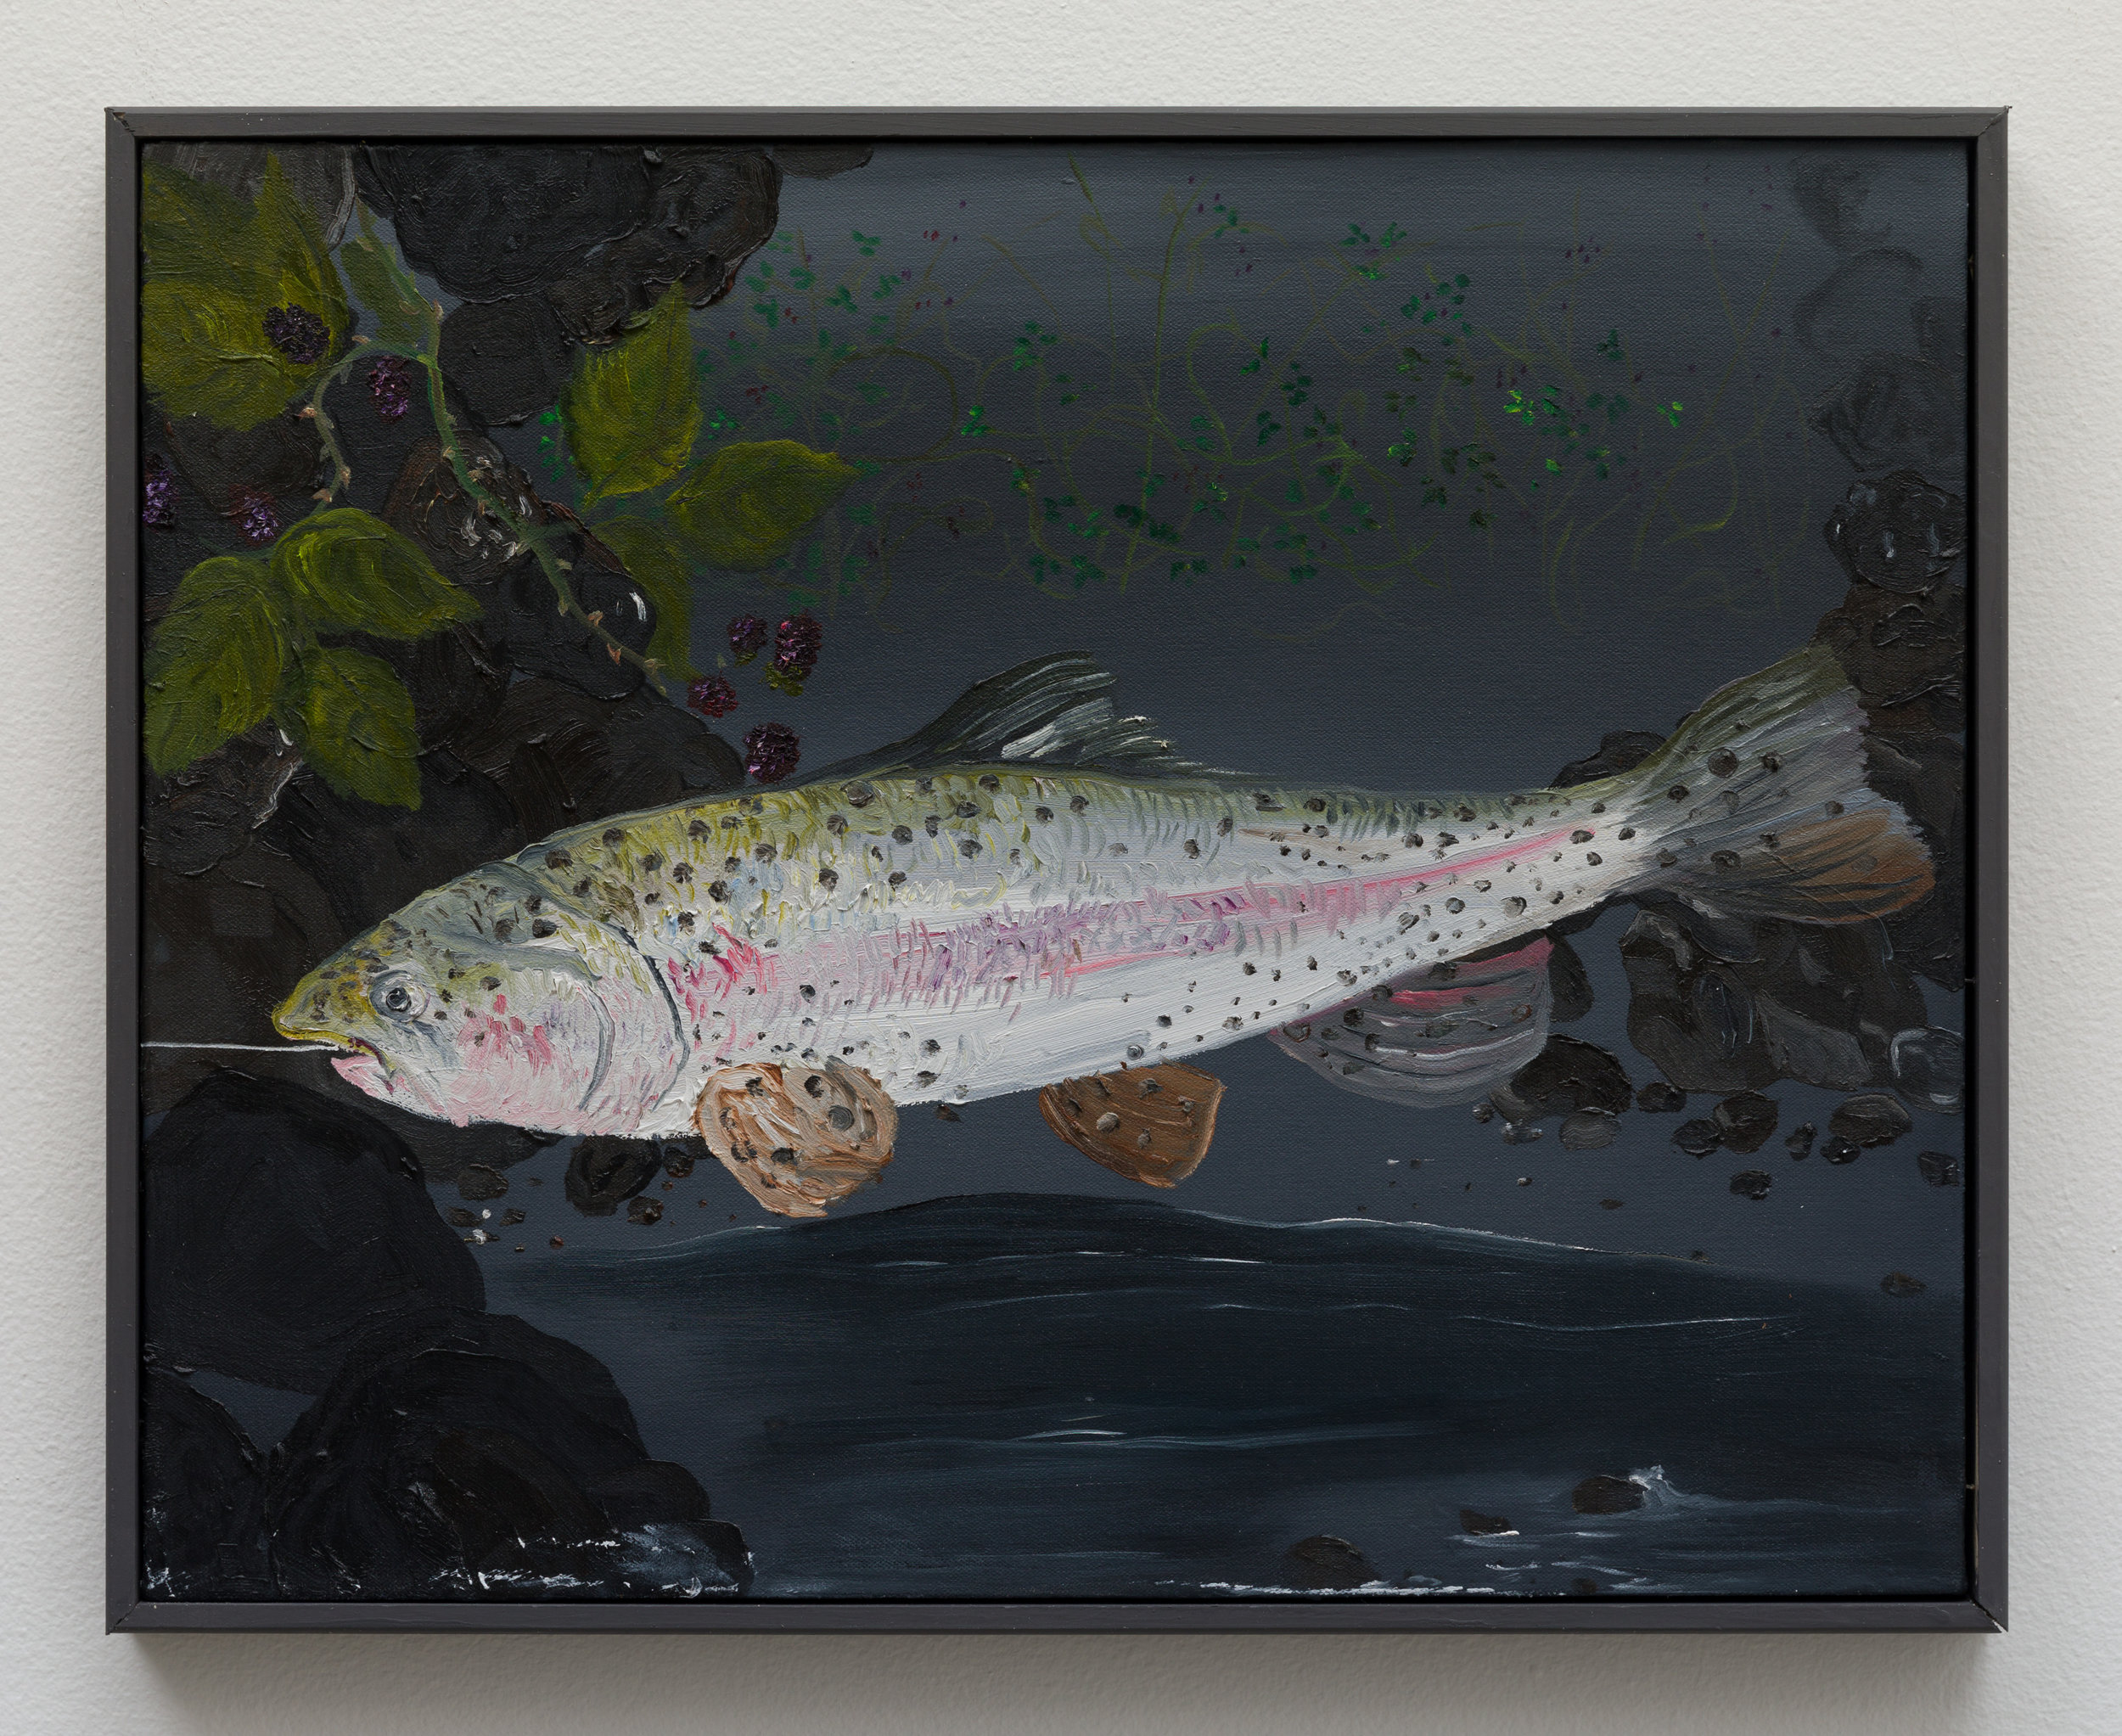 Mandalay_Still Life with Rainbow Trout and Black Berries_2018_MM004.jpg